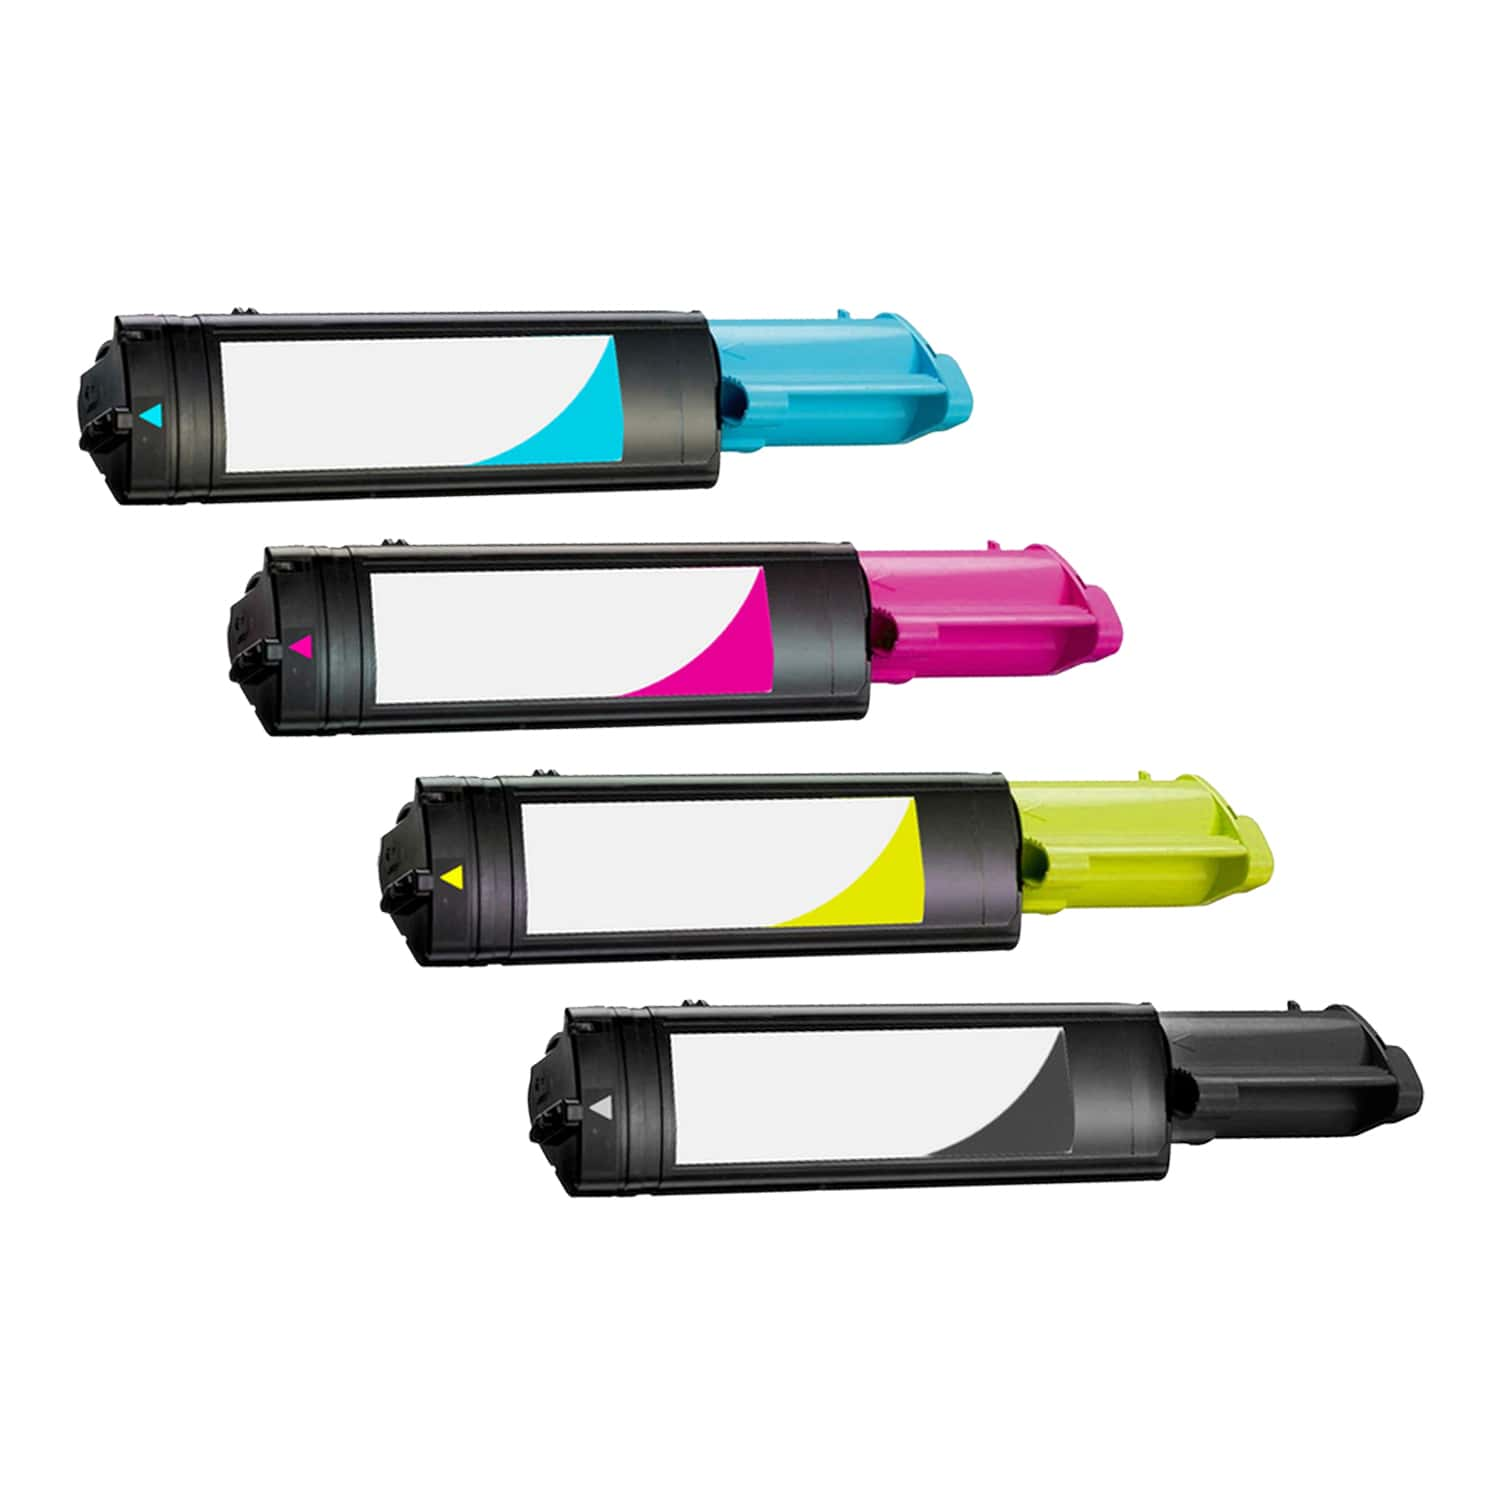 Remanufactured Dell 3000-3100 Toner High Capacity Pack - 4 Cartridges